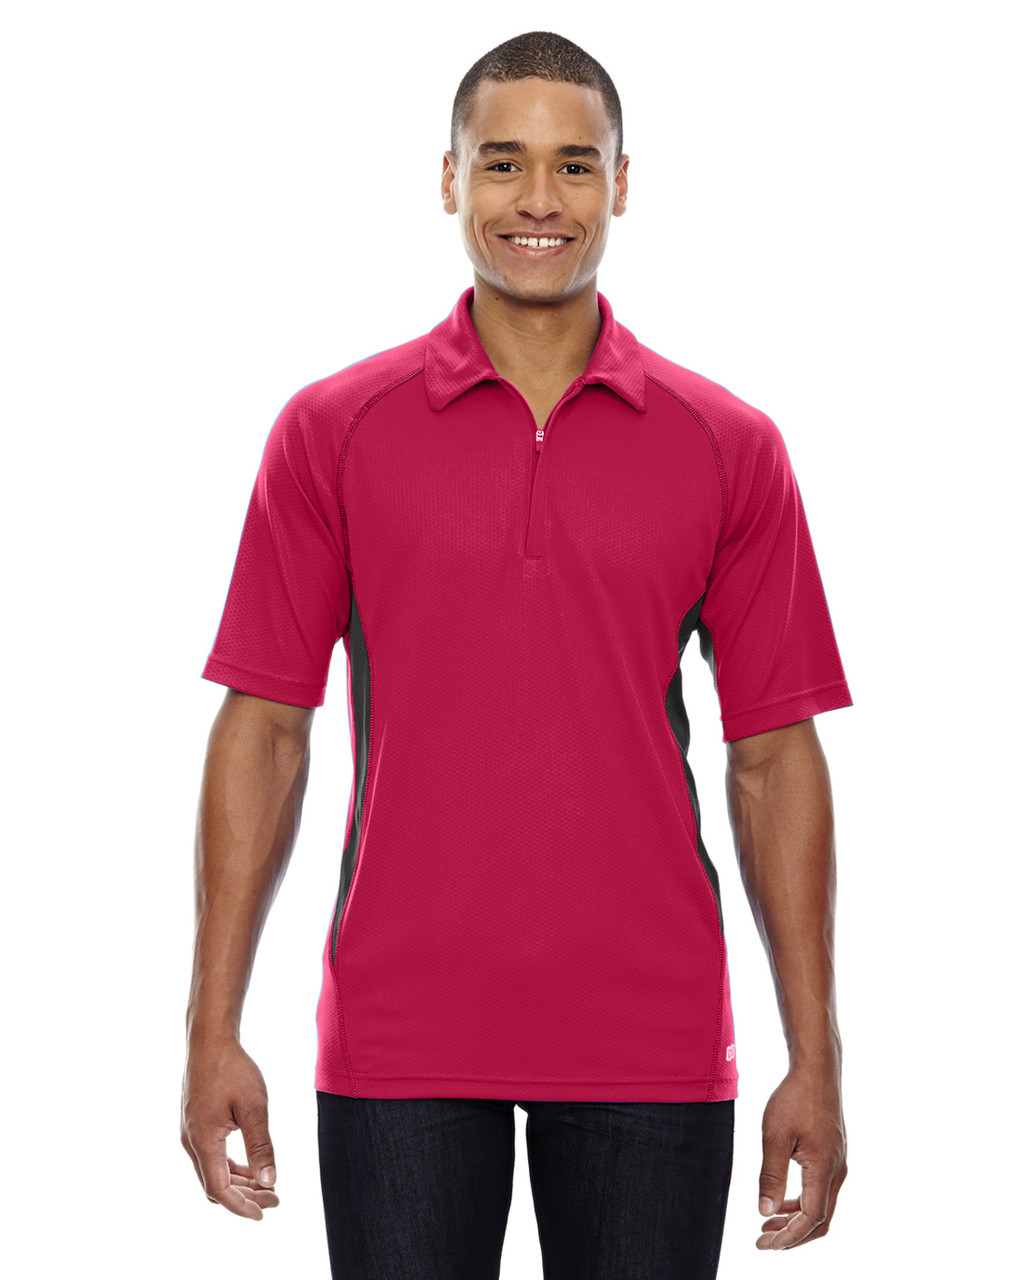 Olympic Red - 88657 North End Sport Red Serac UTK Performance Zippered Polo Shirt